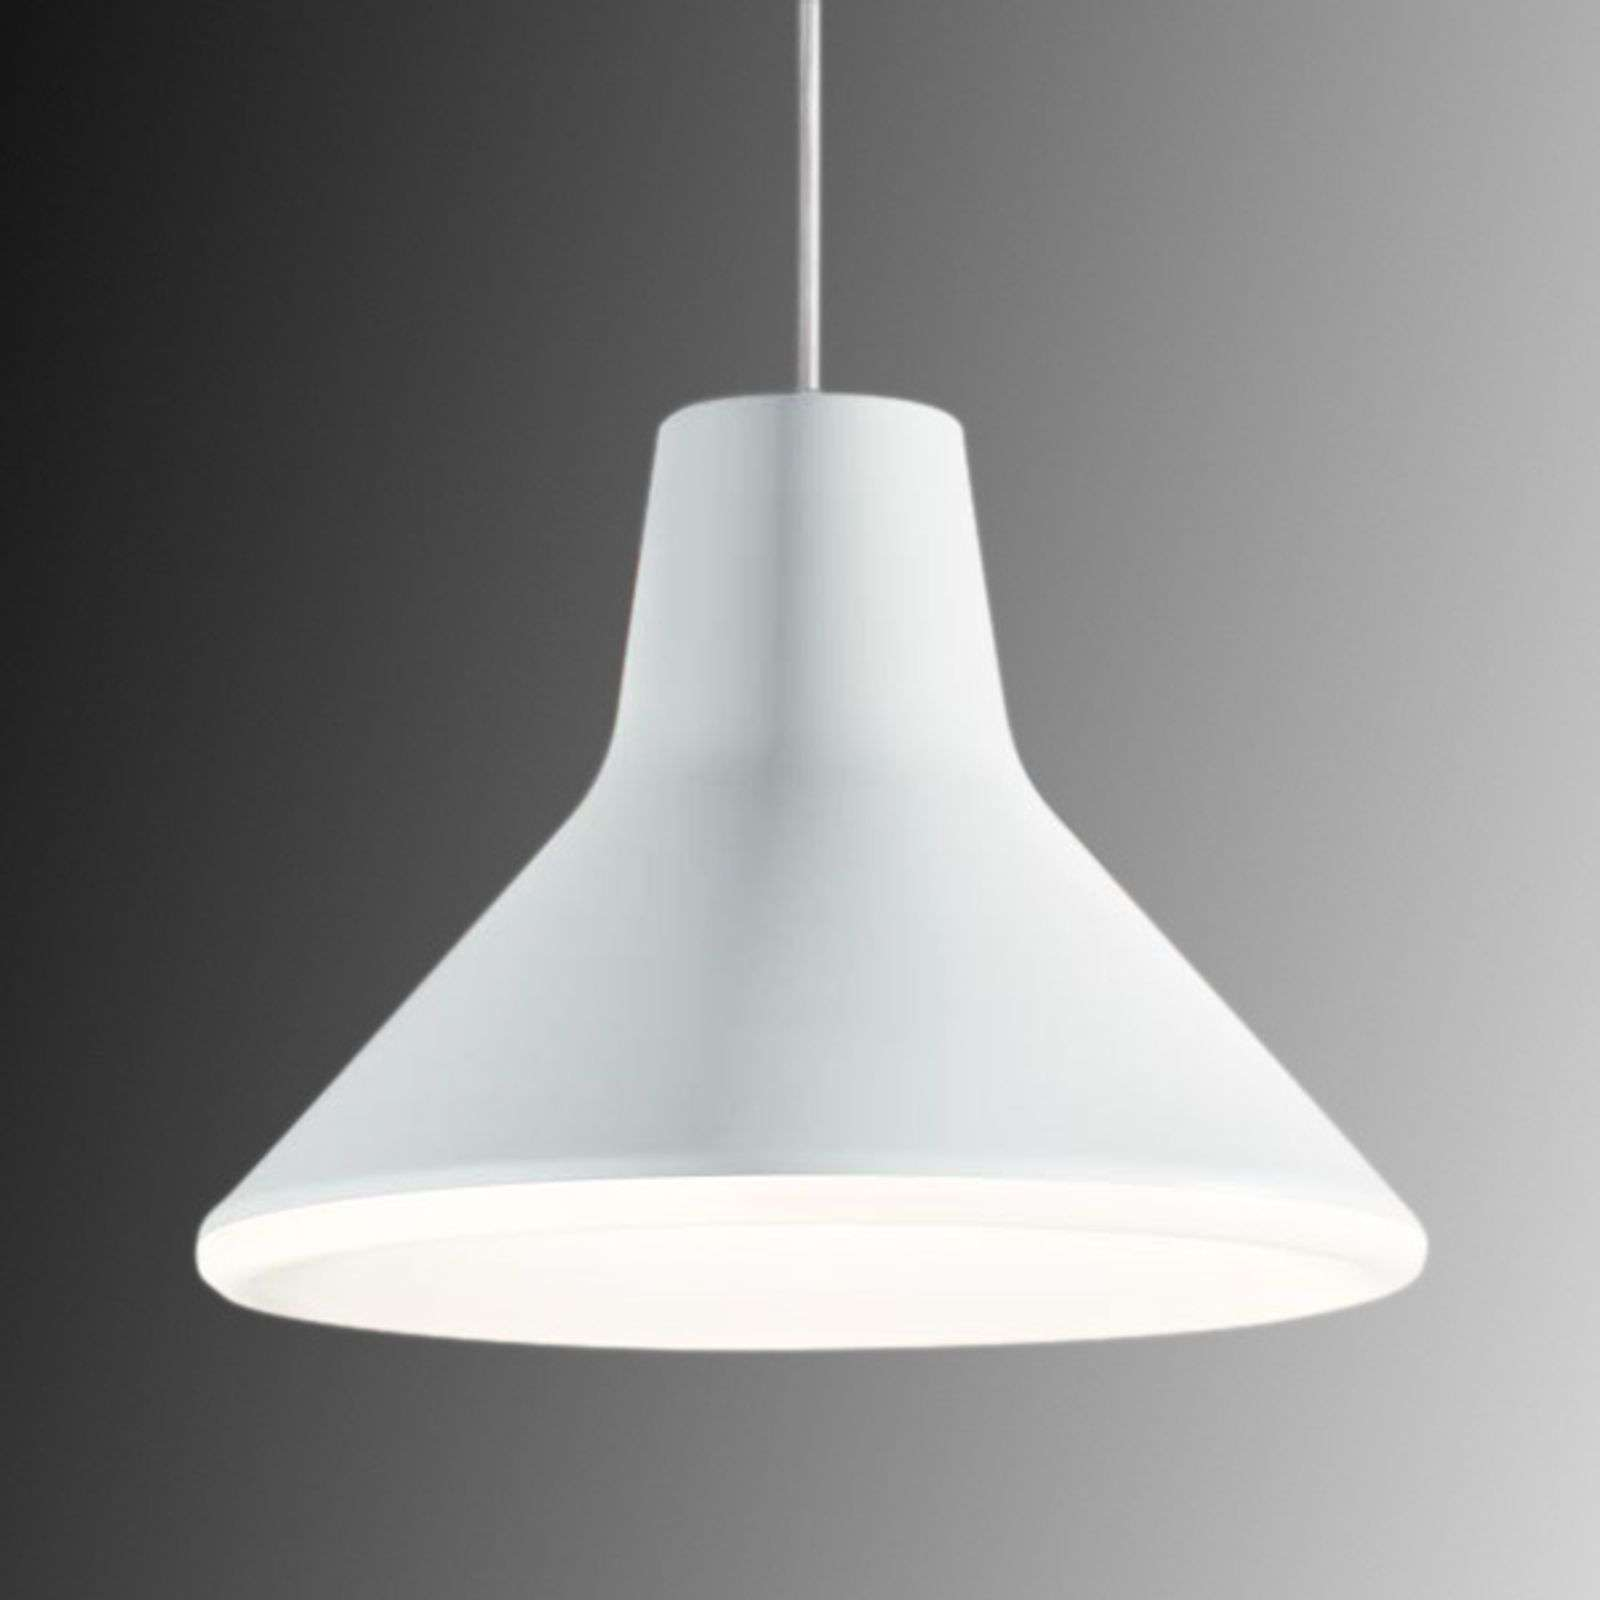 Suspension LED de designer Archetype, blanc